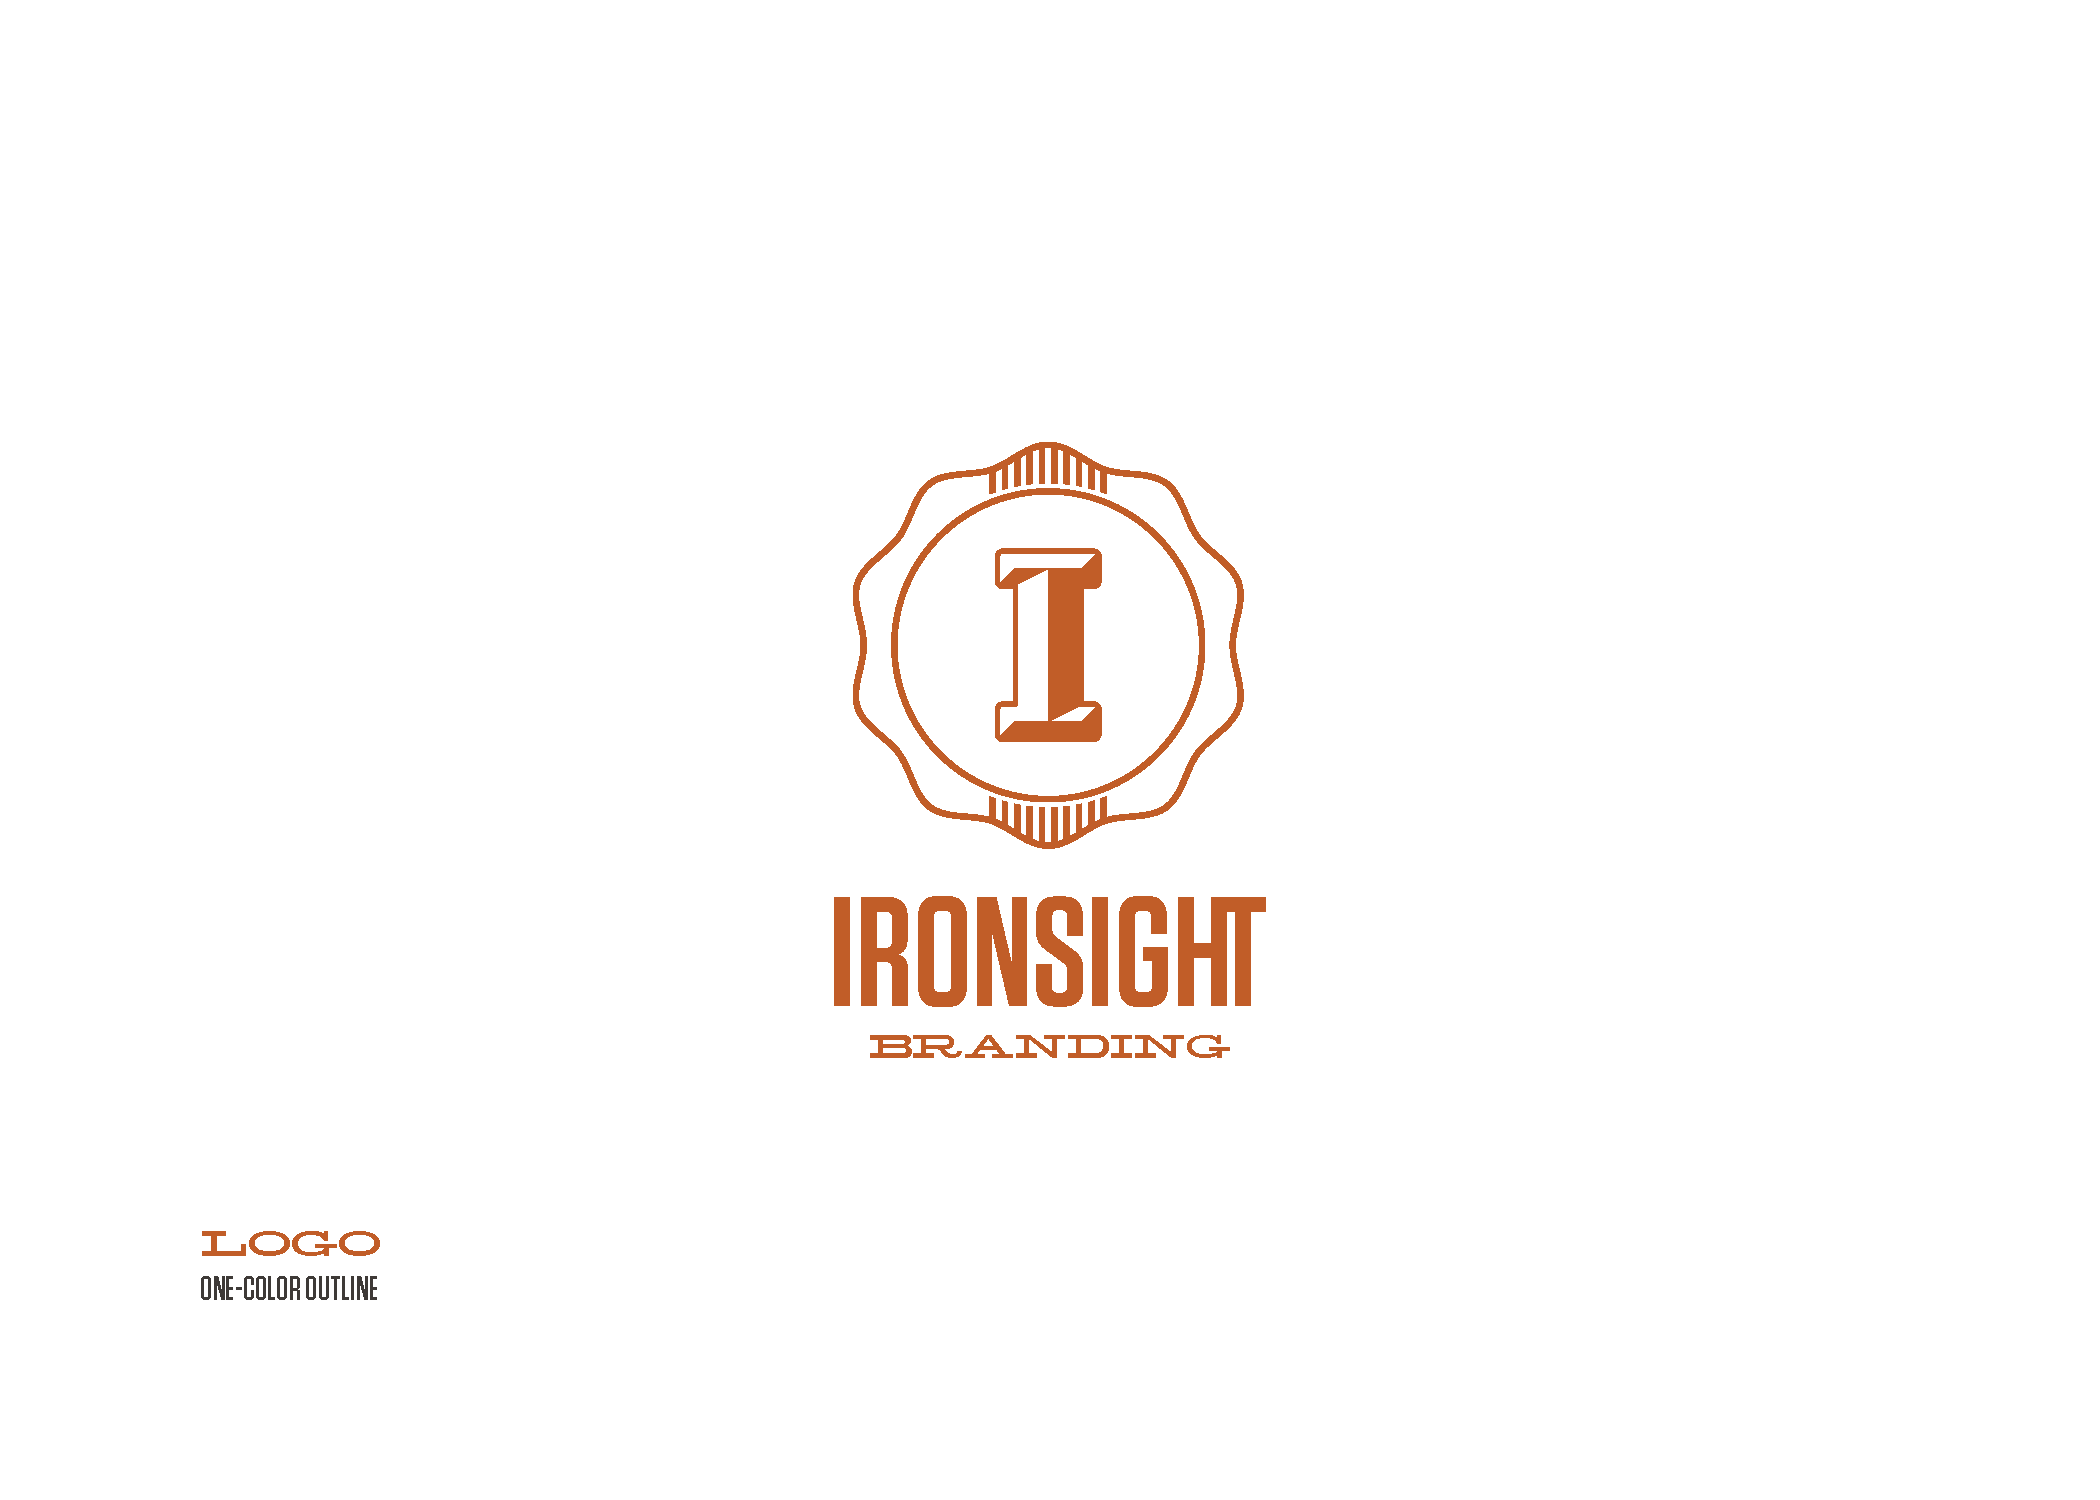 ironsight_branding copy_Page_11.png